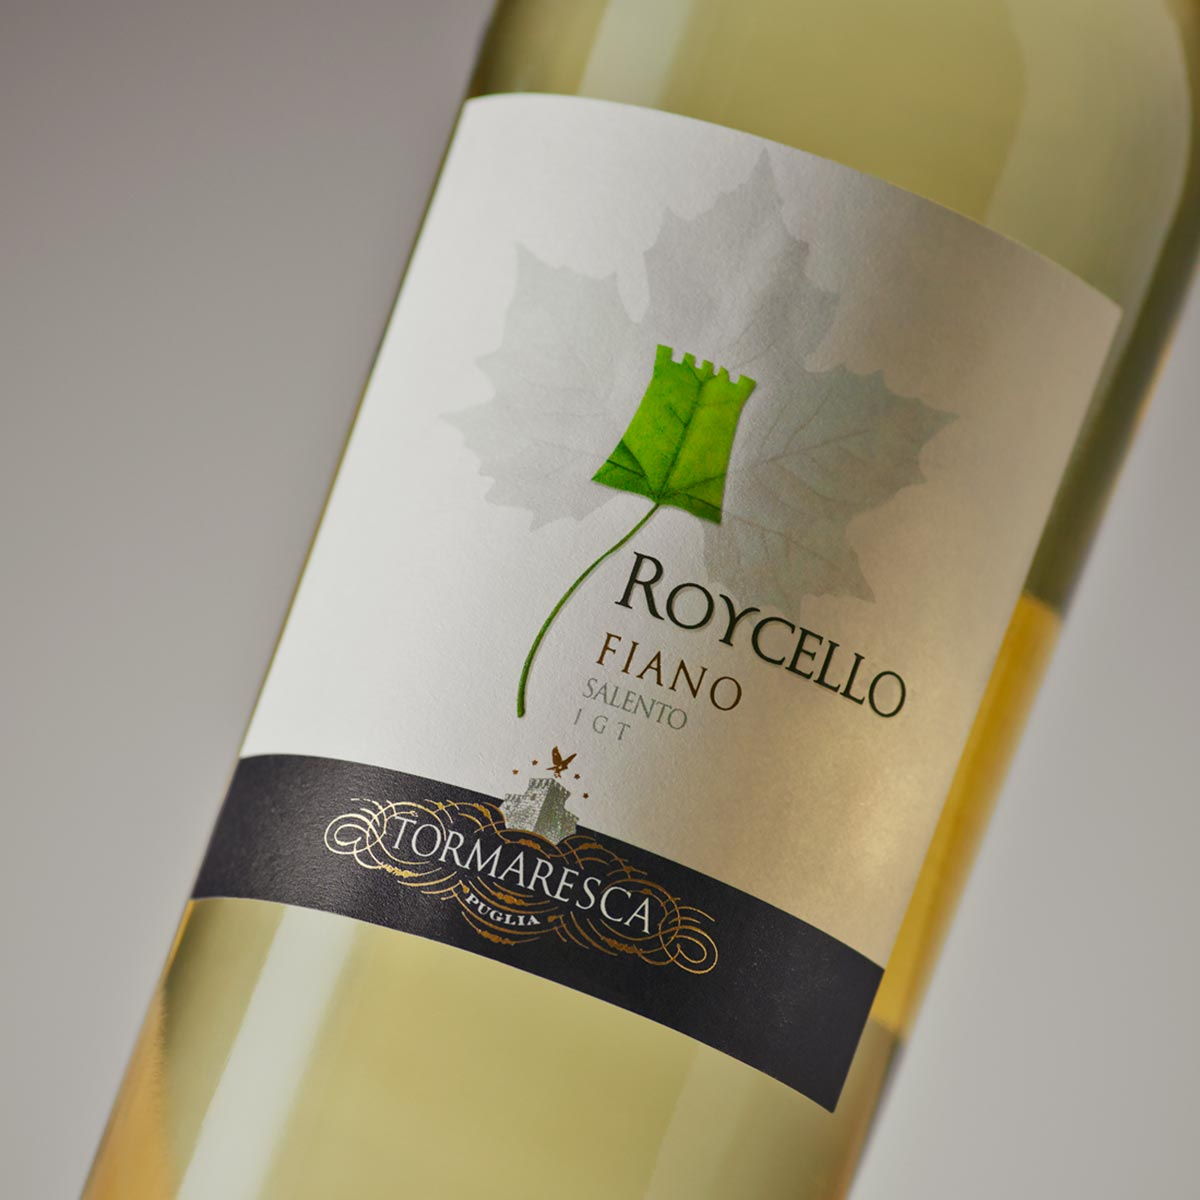 Roycello detail 01 1200x1200